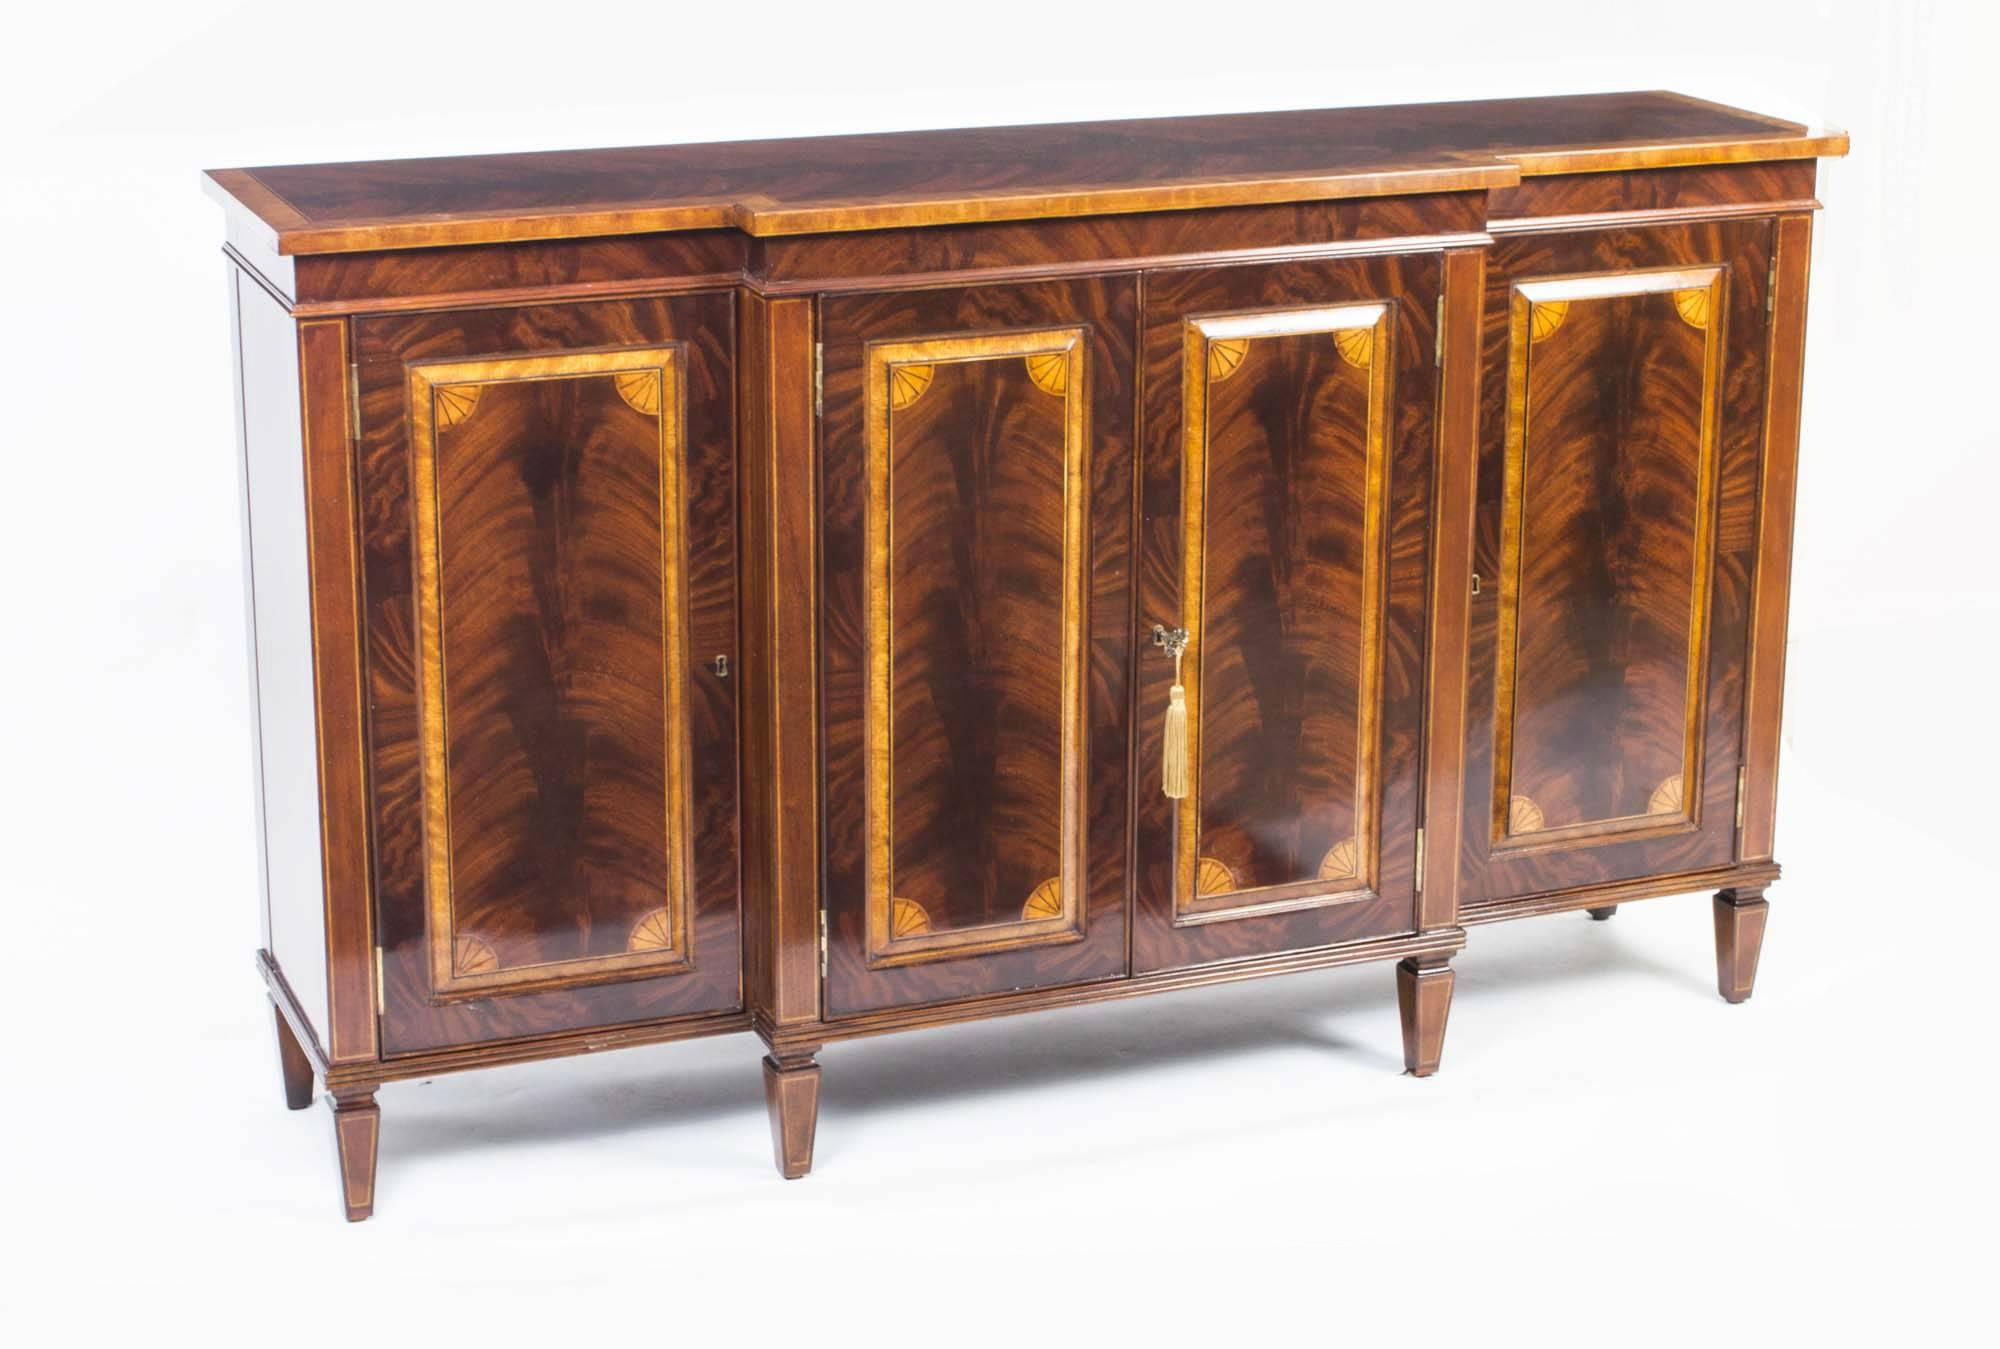 New Credenzas And Sideboards - Bjdgjy intended for Credenzas And Sideboards (Image 7 of 15)